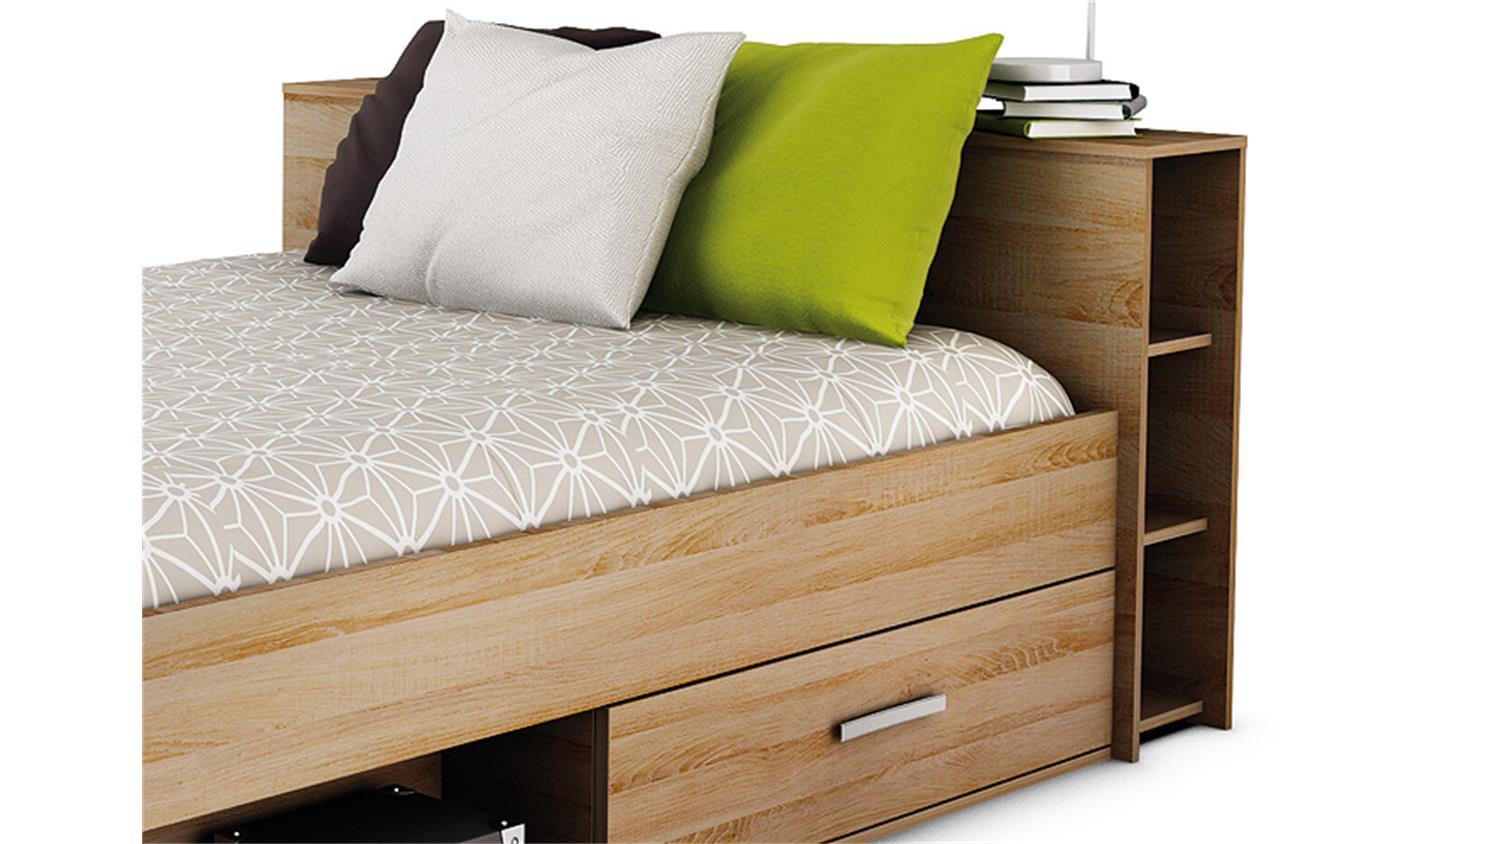 bett pocket 140x200 cm das bett in sonoma eiche dekor bietet dank. Black Bedroom Furniture Sets. Home Design Ideas